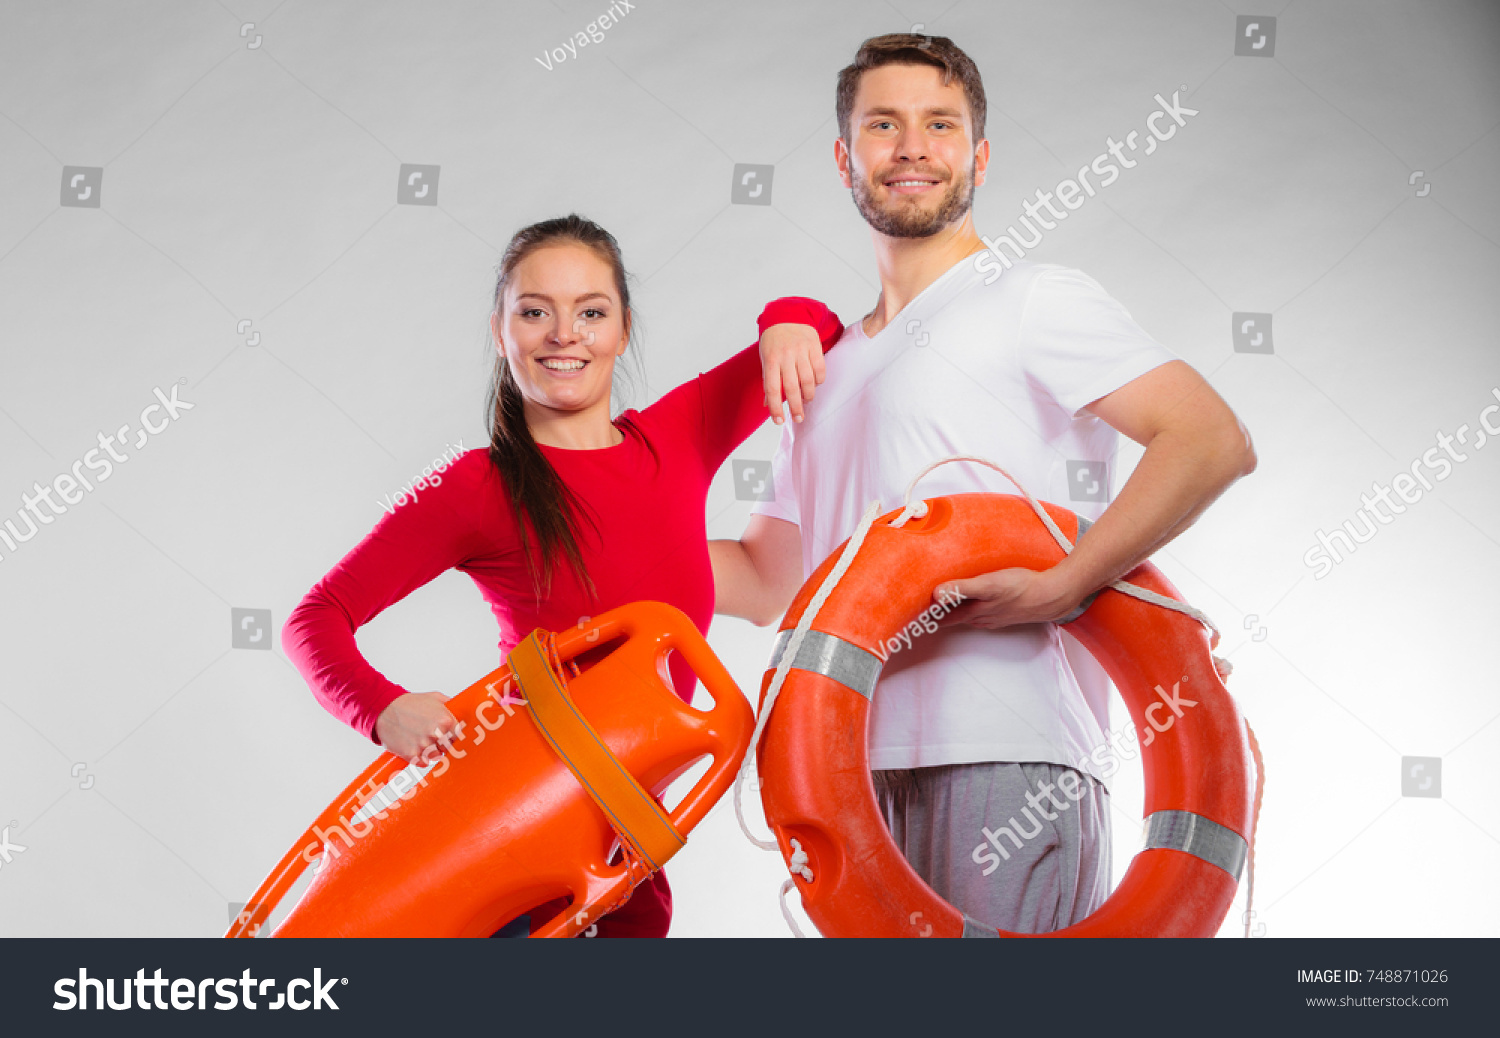 1b2b940aad0 Accident prevention and water rescue. Young man and woman lifeguard couple  on duty holding ring